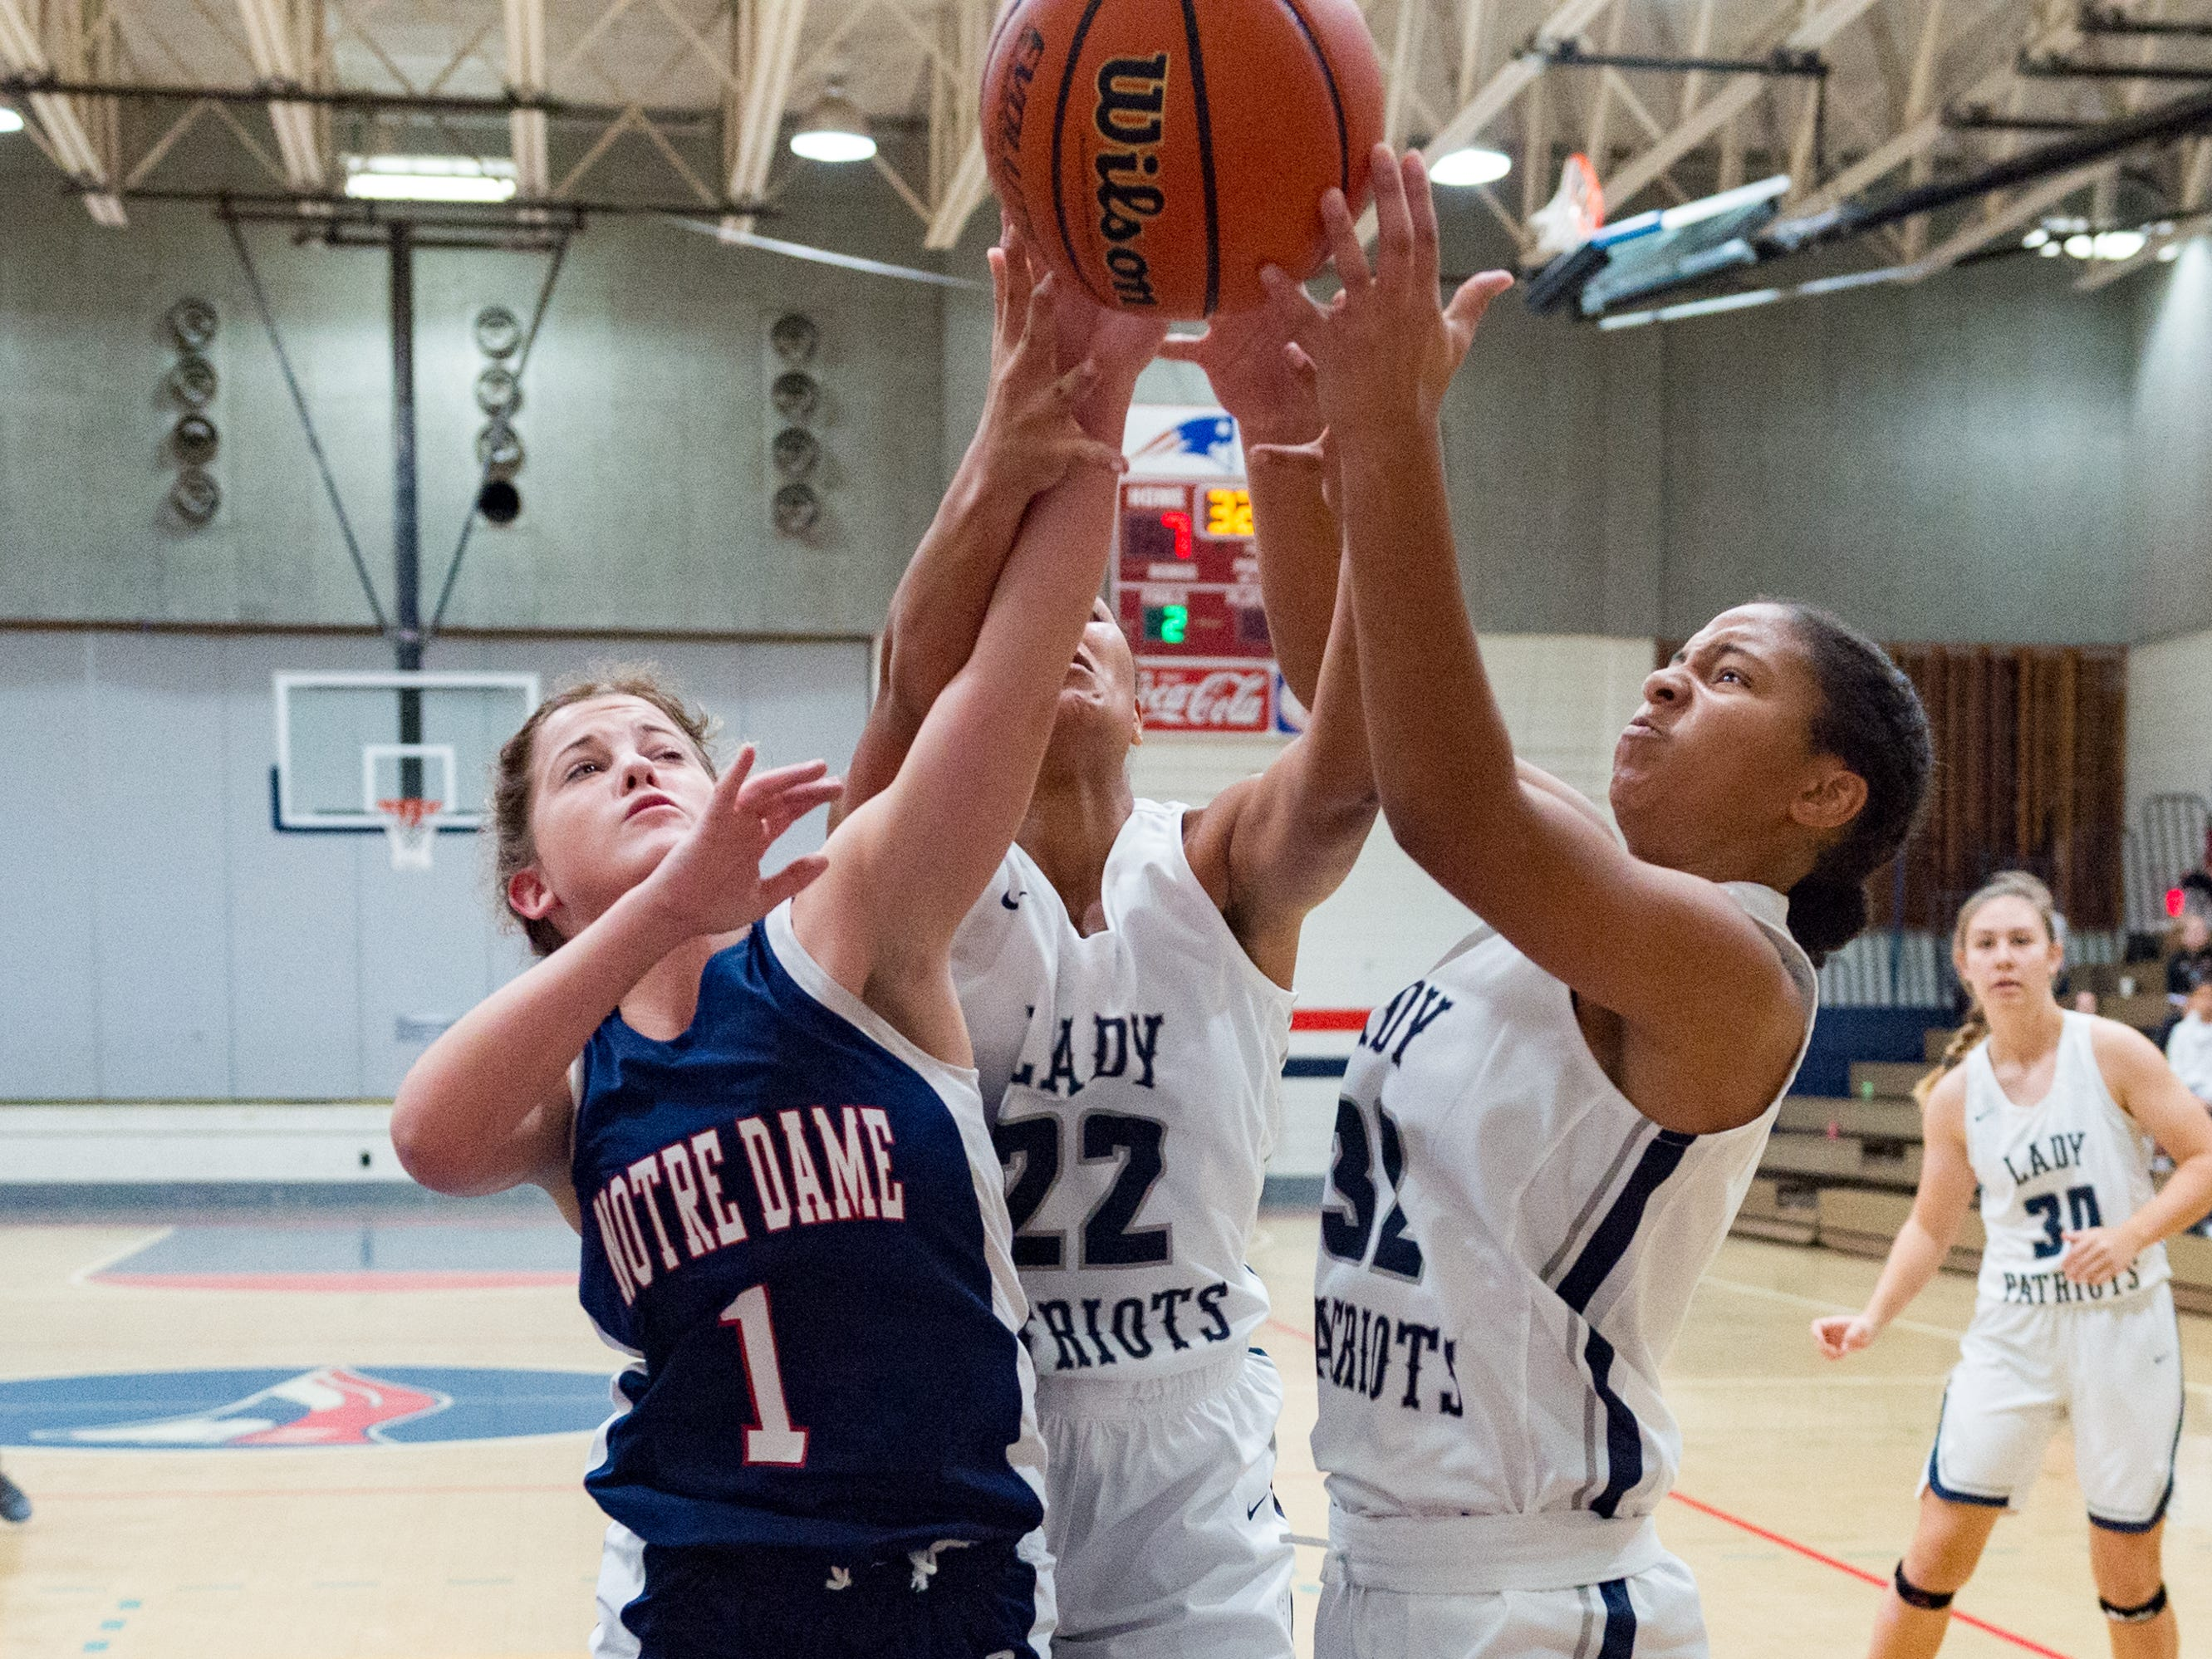 Notre Dame and North Vermillion face off in Girls Basketball Tournament at North Vermillion High School. Tuesday, Nov. 20, 2018.